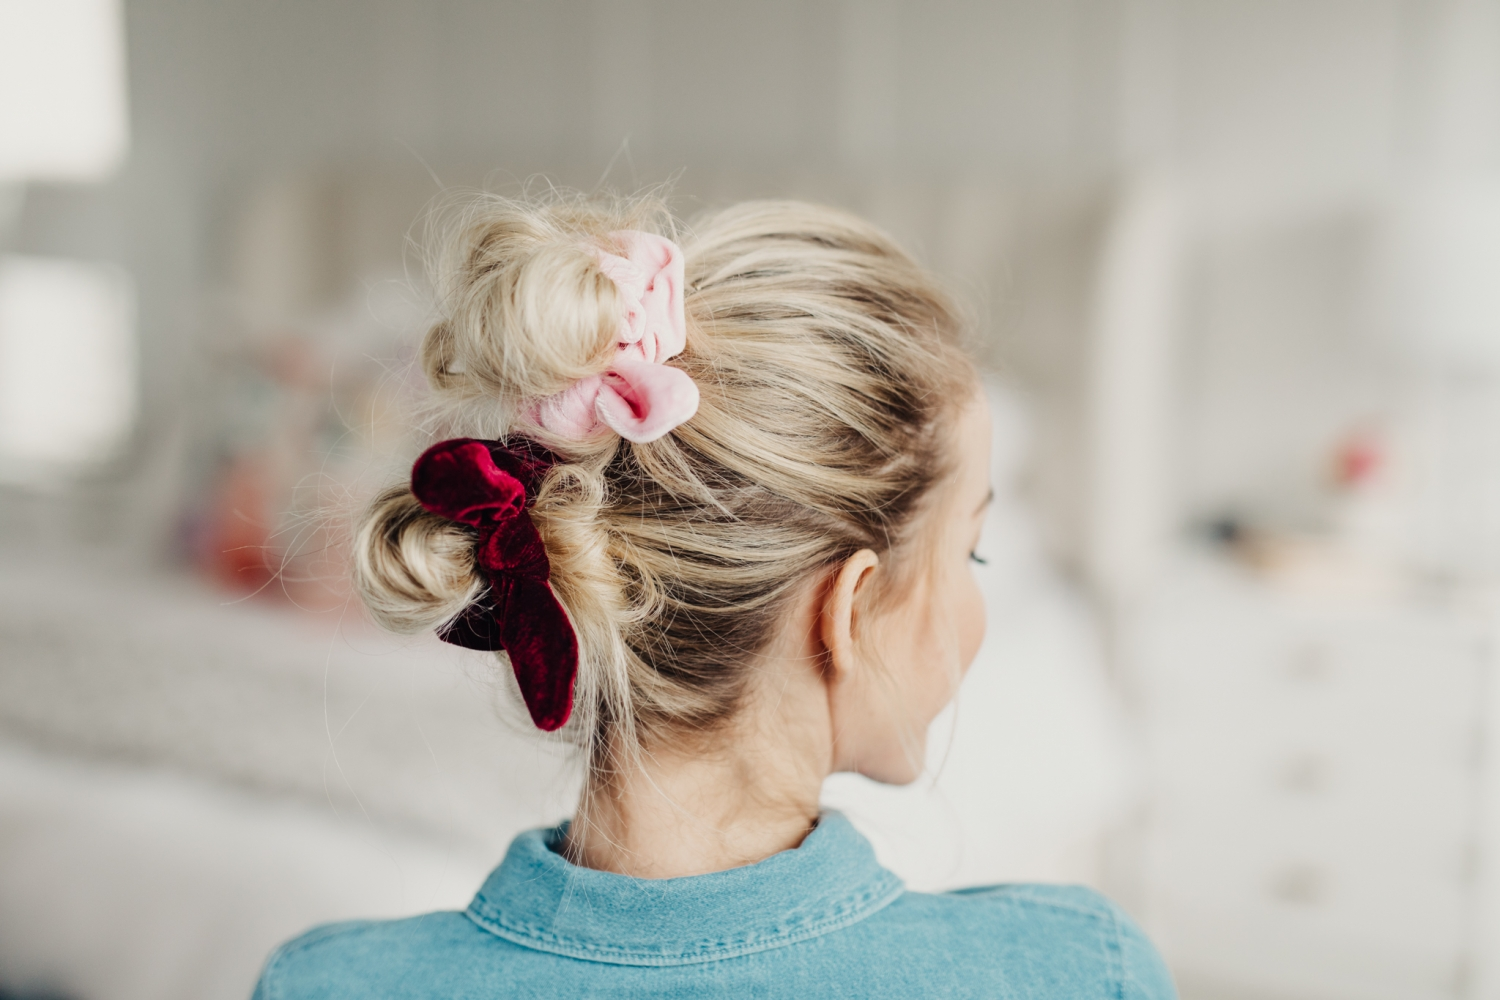 Scrunchie Hair Styles: 8 Ways To Wear A Scrunchie!